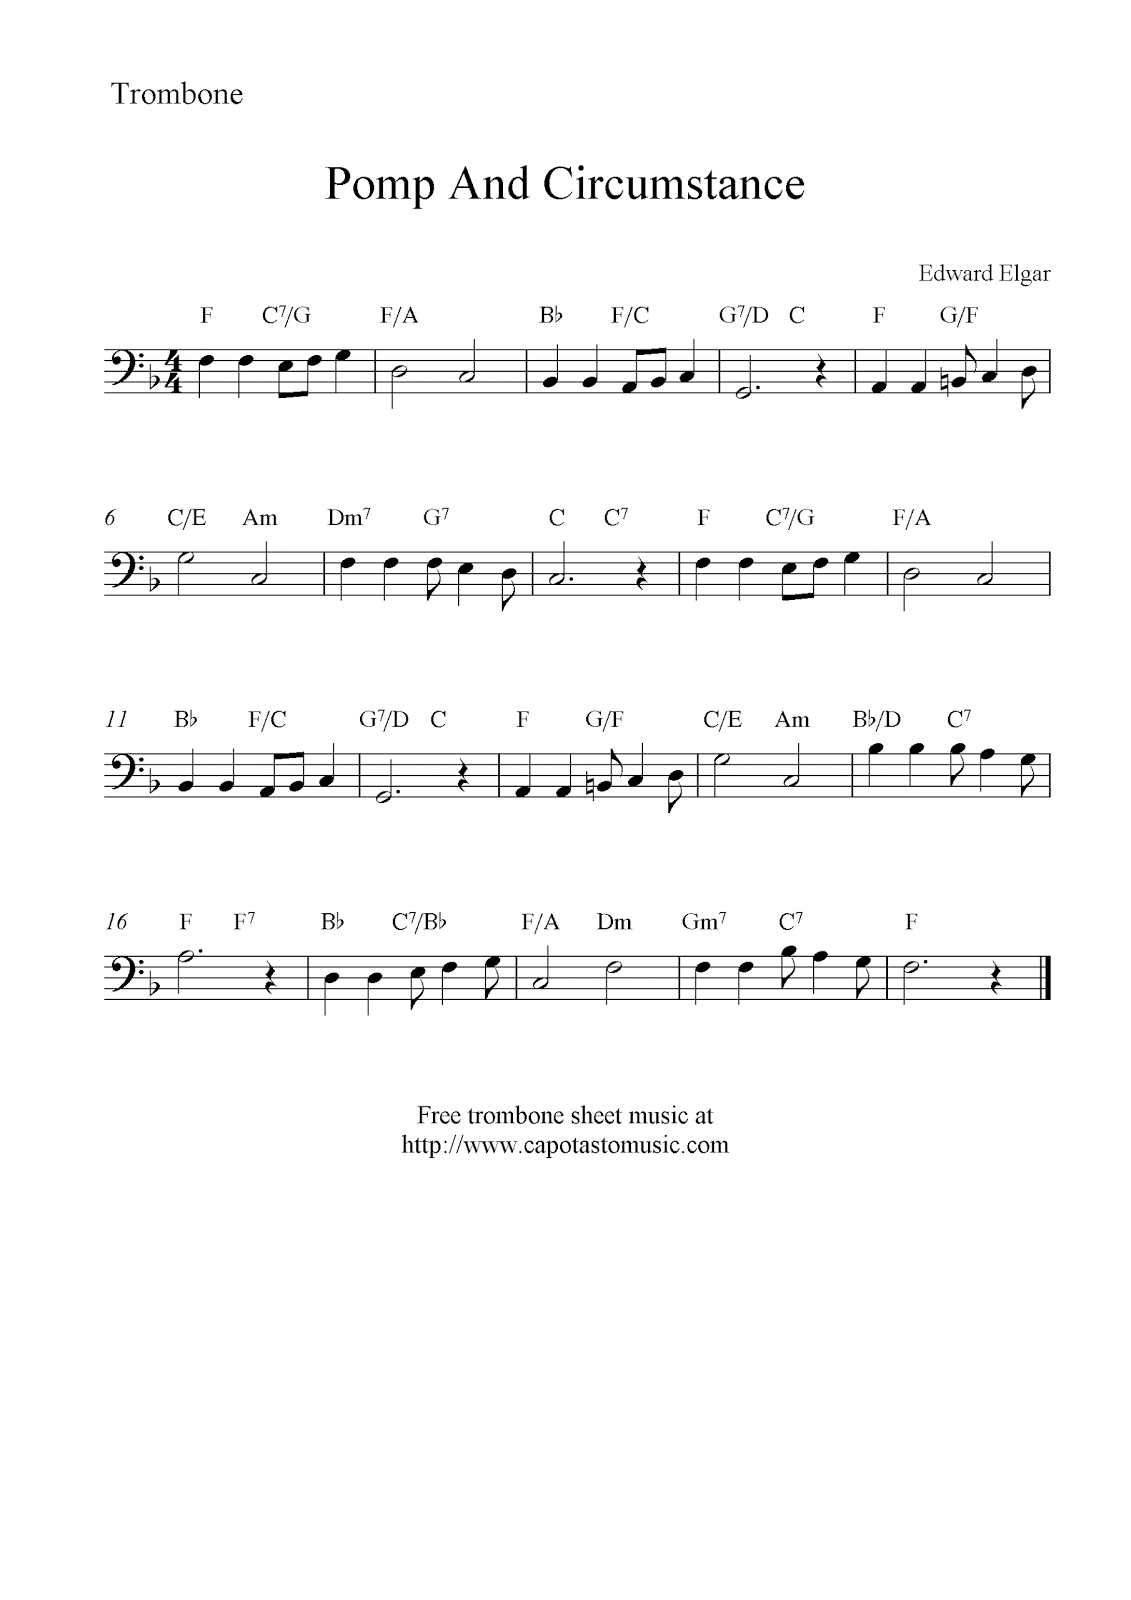 Pomp And Circumstance (Land Of Hope And Glory), Free Trombone Sheet - Free Printable Sheet Music Pomp And Circumstance